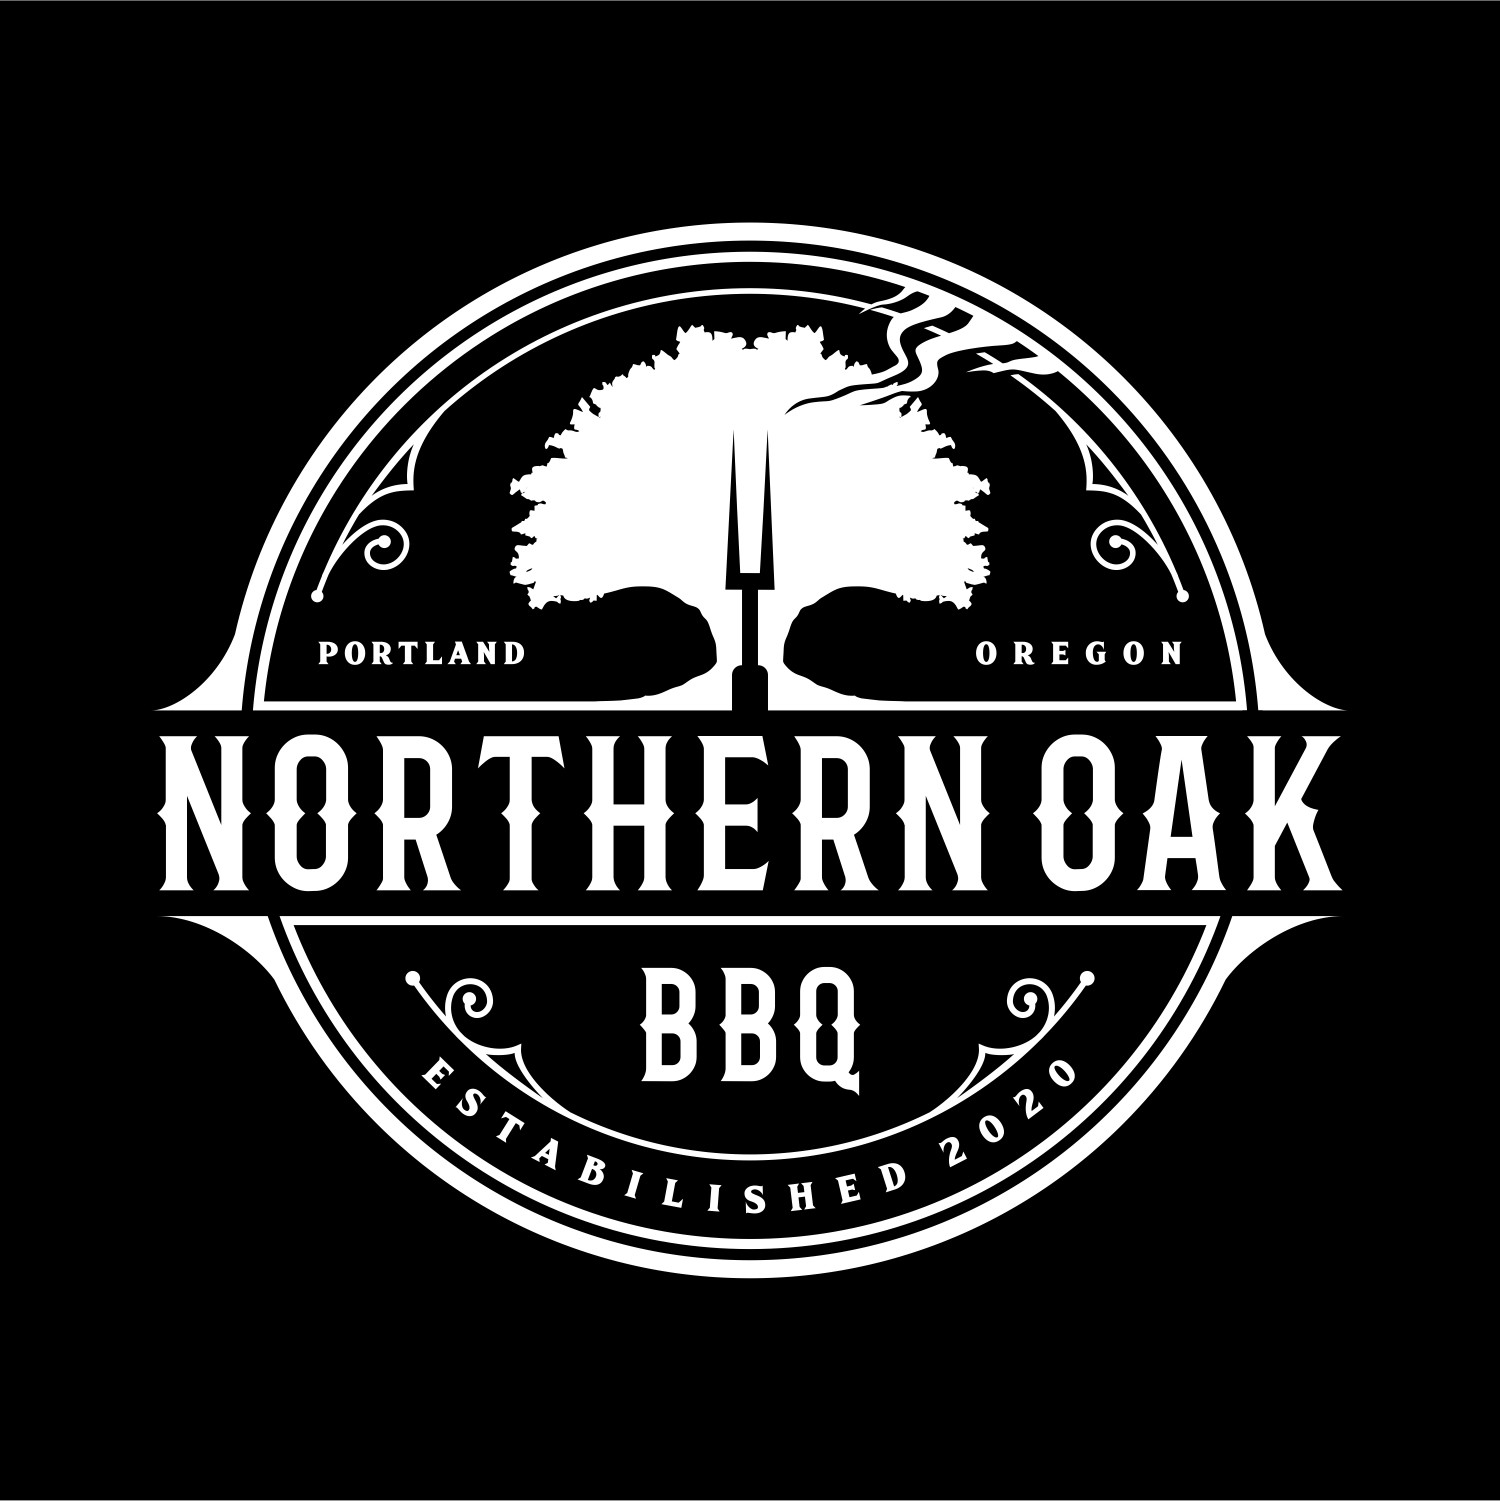 BBQ Food Cart and catering company looking for a Fresh new logo!!